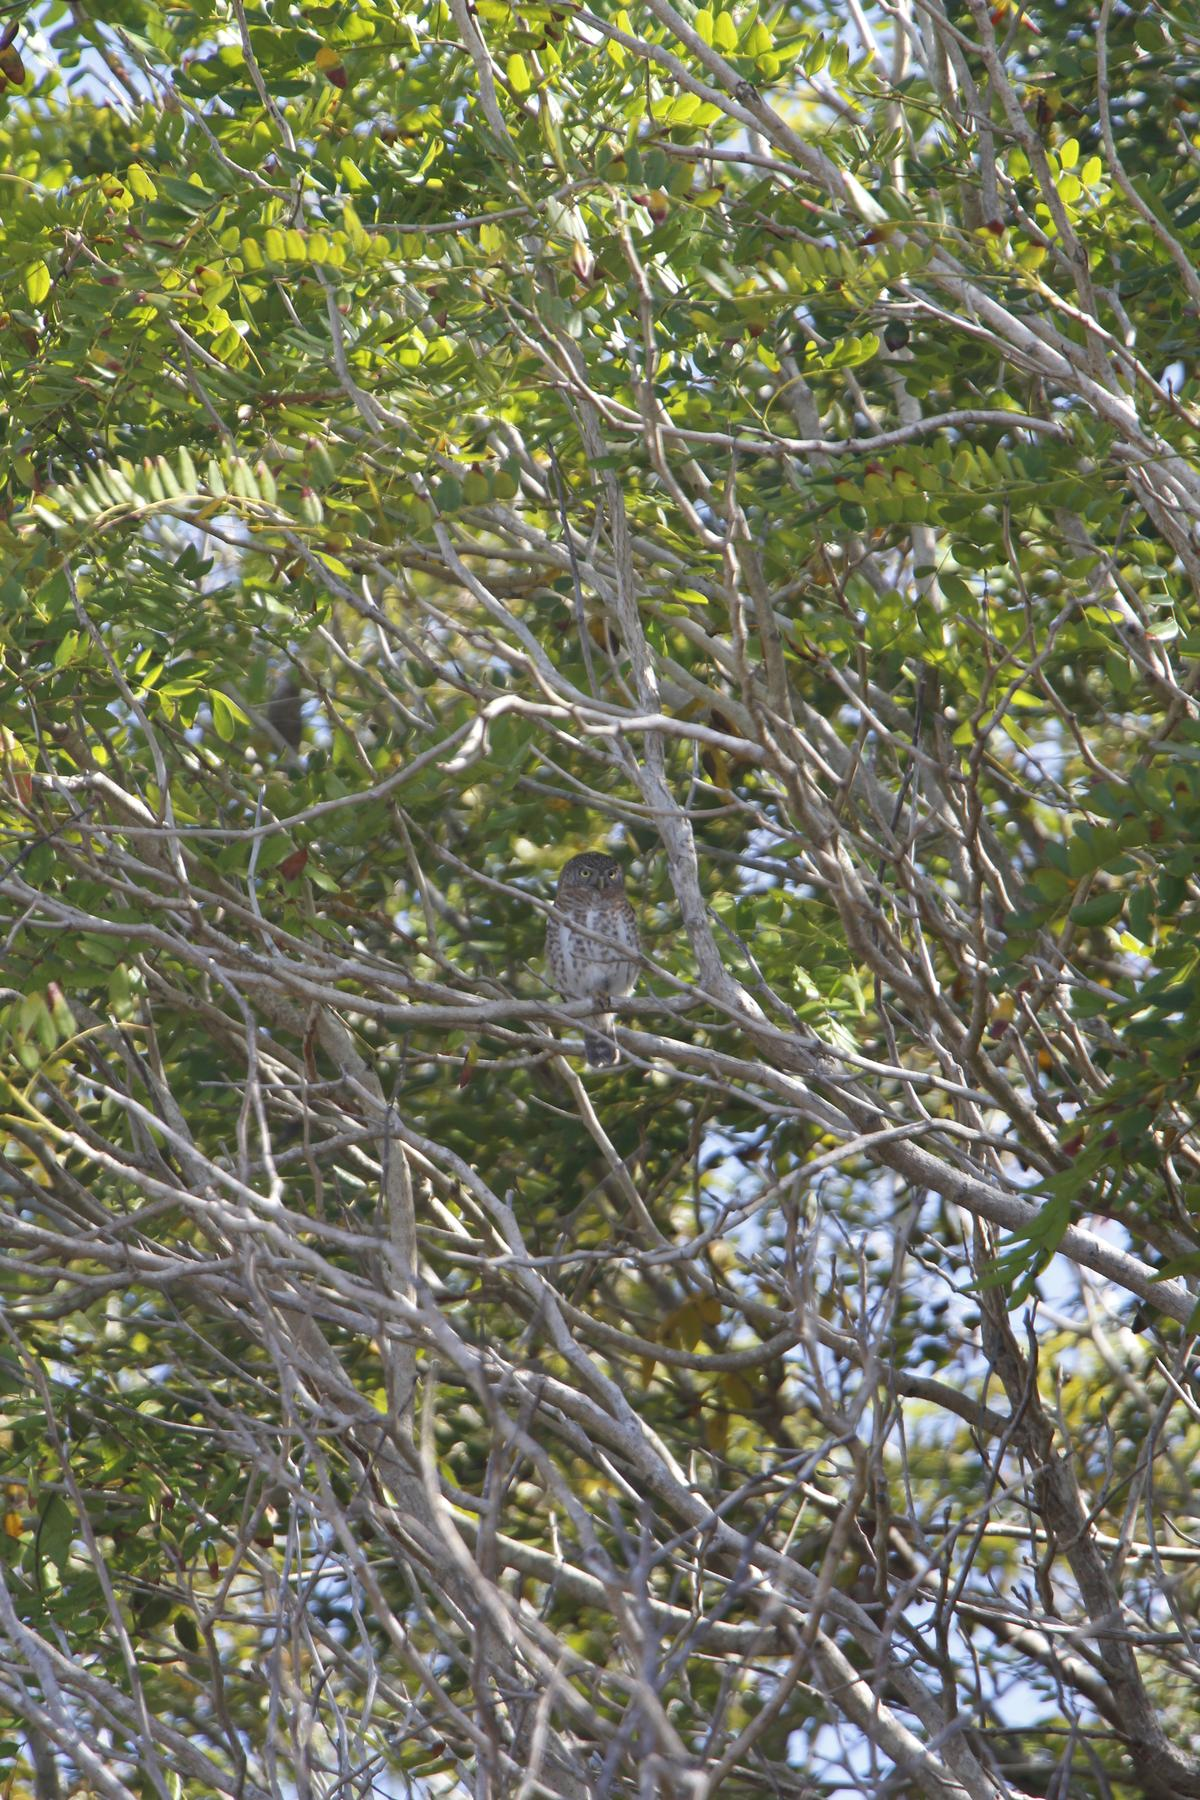 Students spotted a Cuban pygmy owl. (Photo courtesy of Mark White)